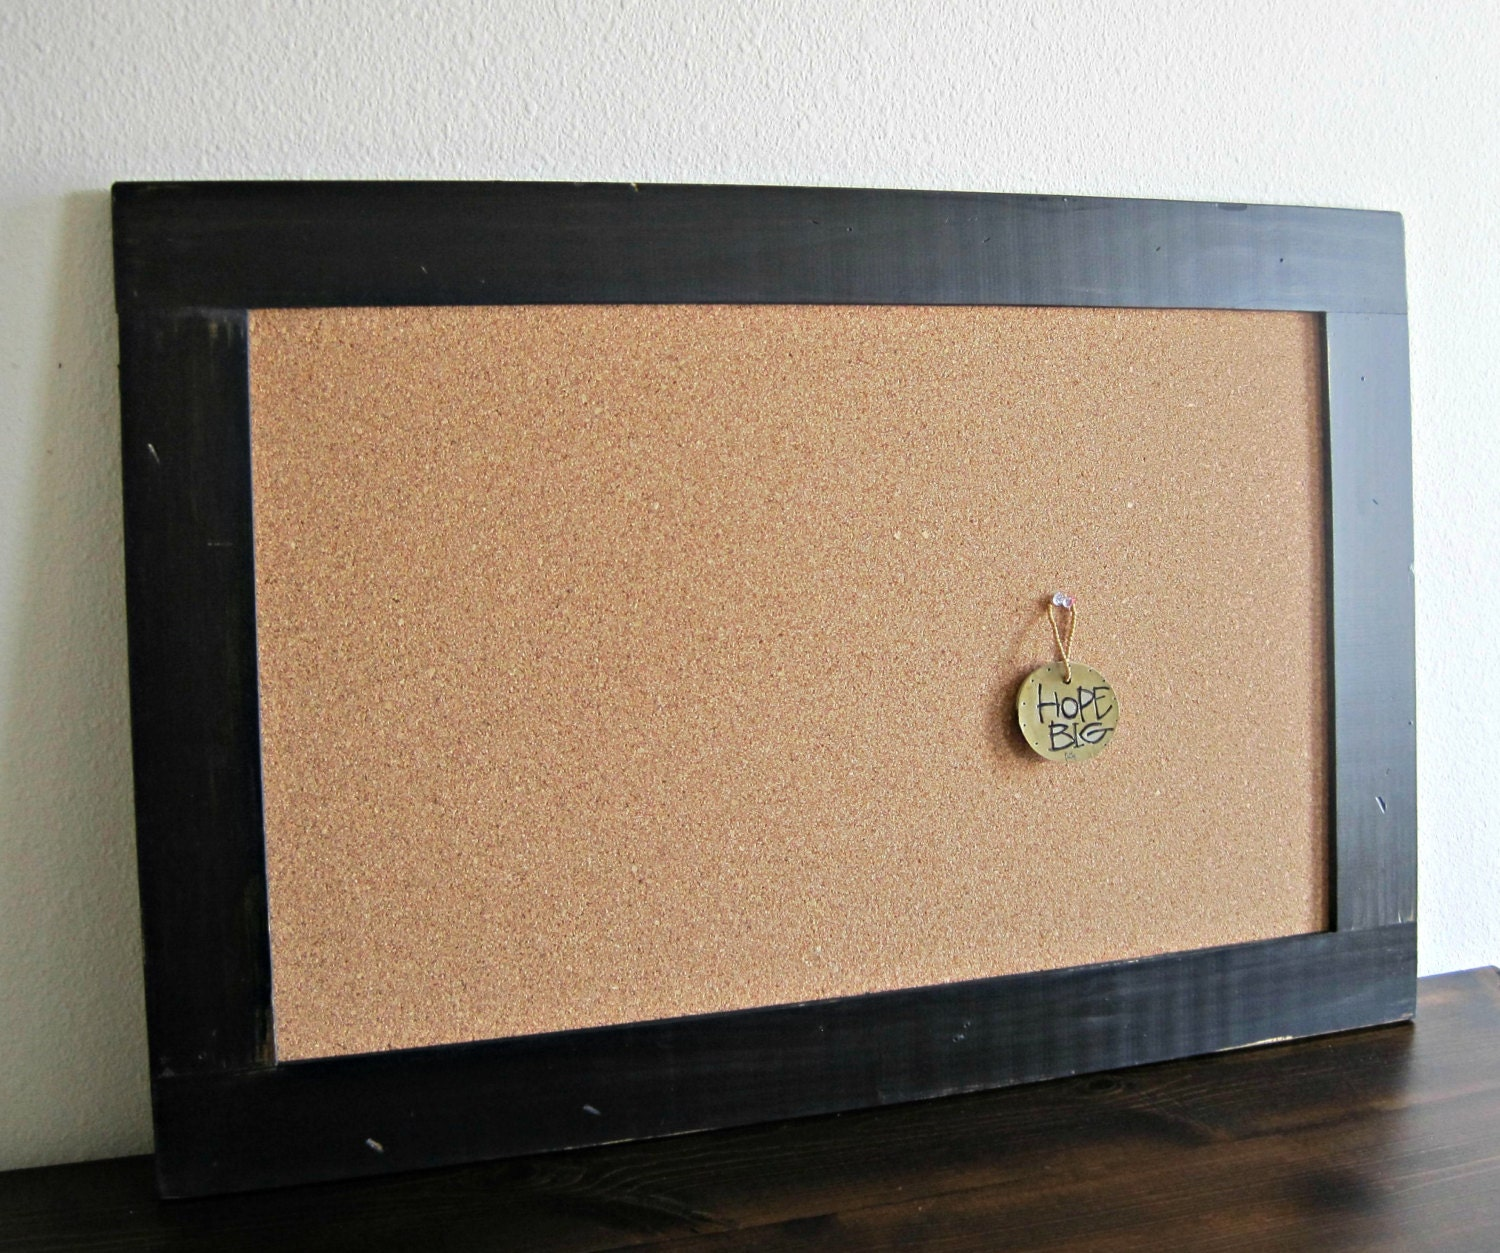 Extra Large Framed Cork Board Distressed Wood In Black 24 X